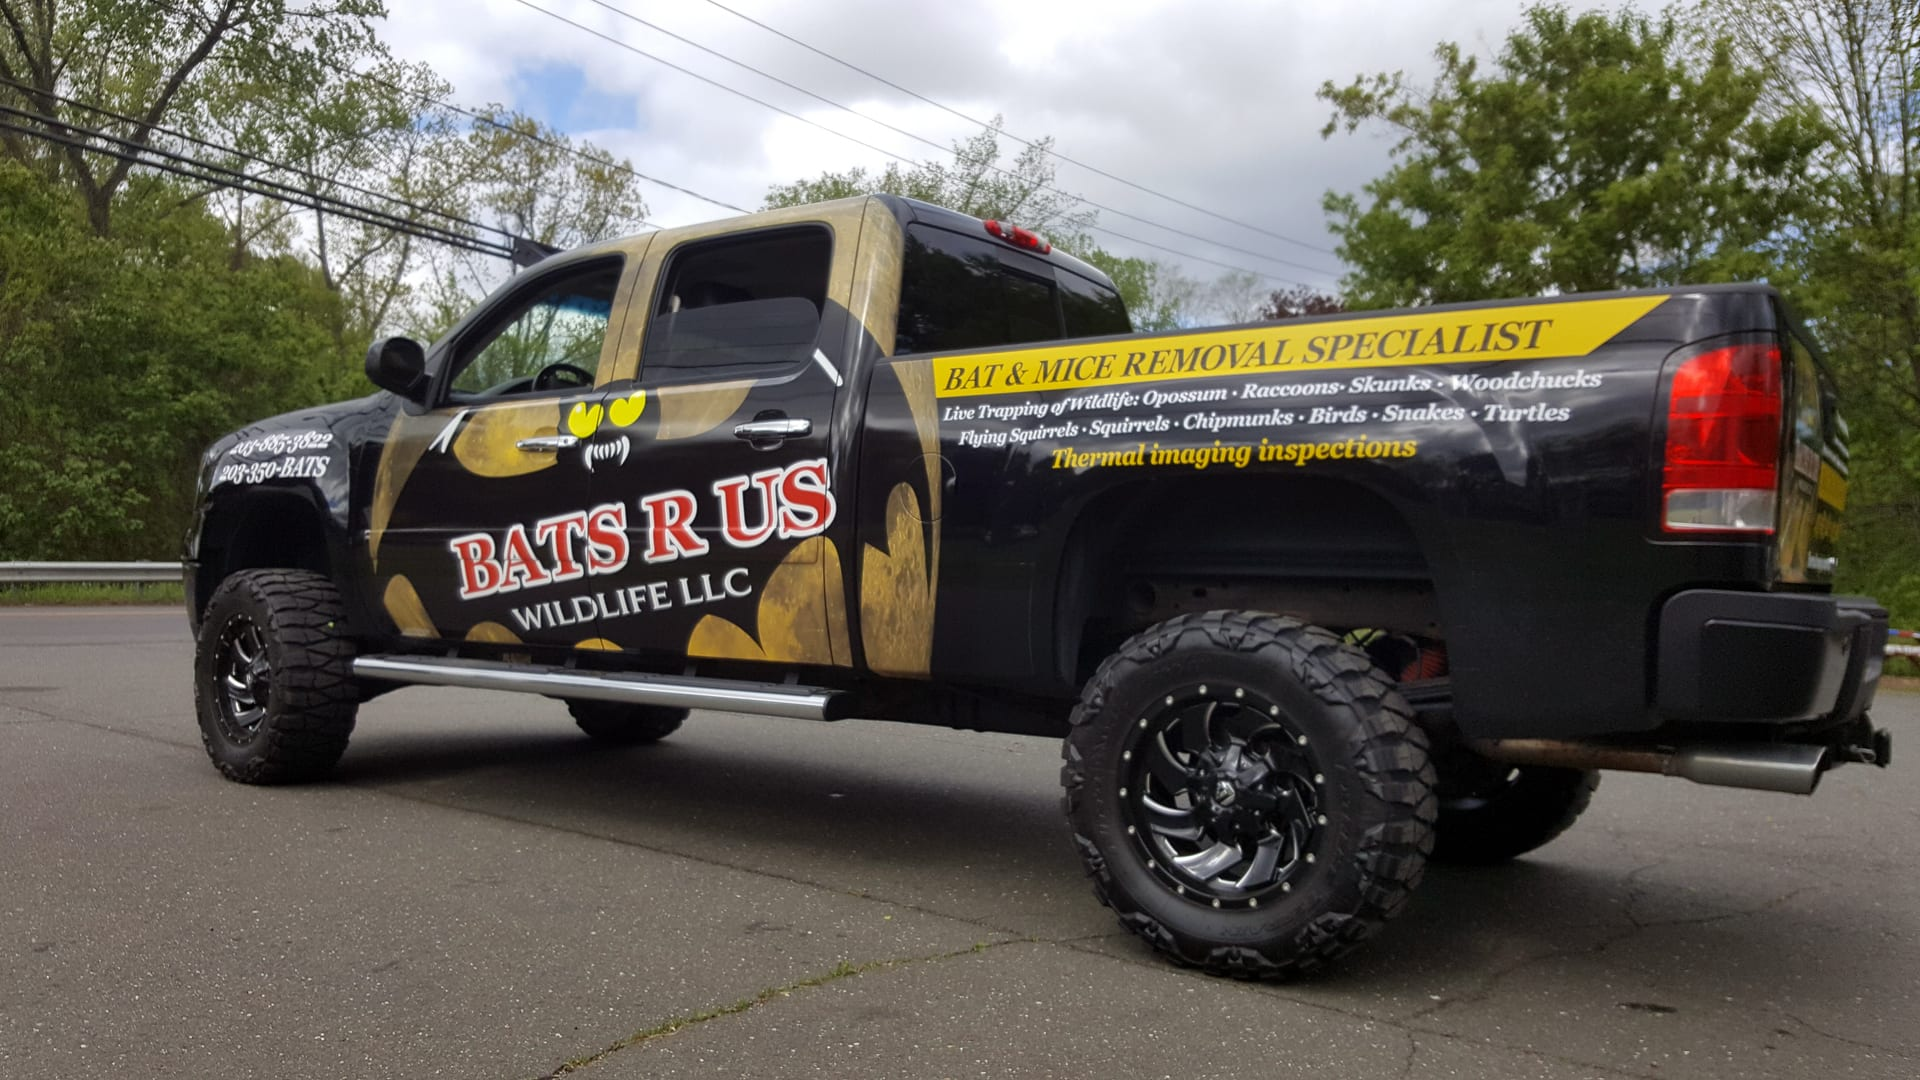 Bats R Us - Full Truck Wrap